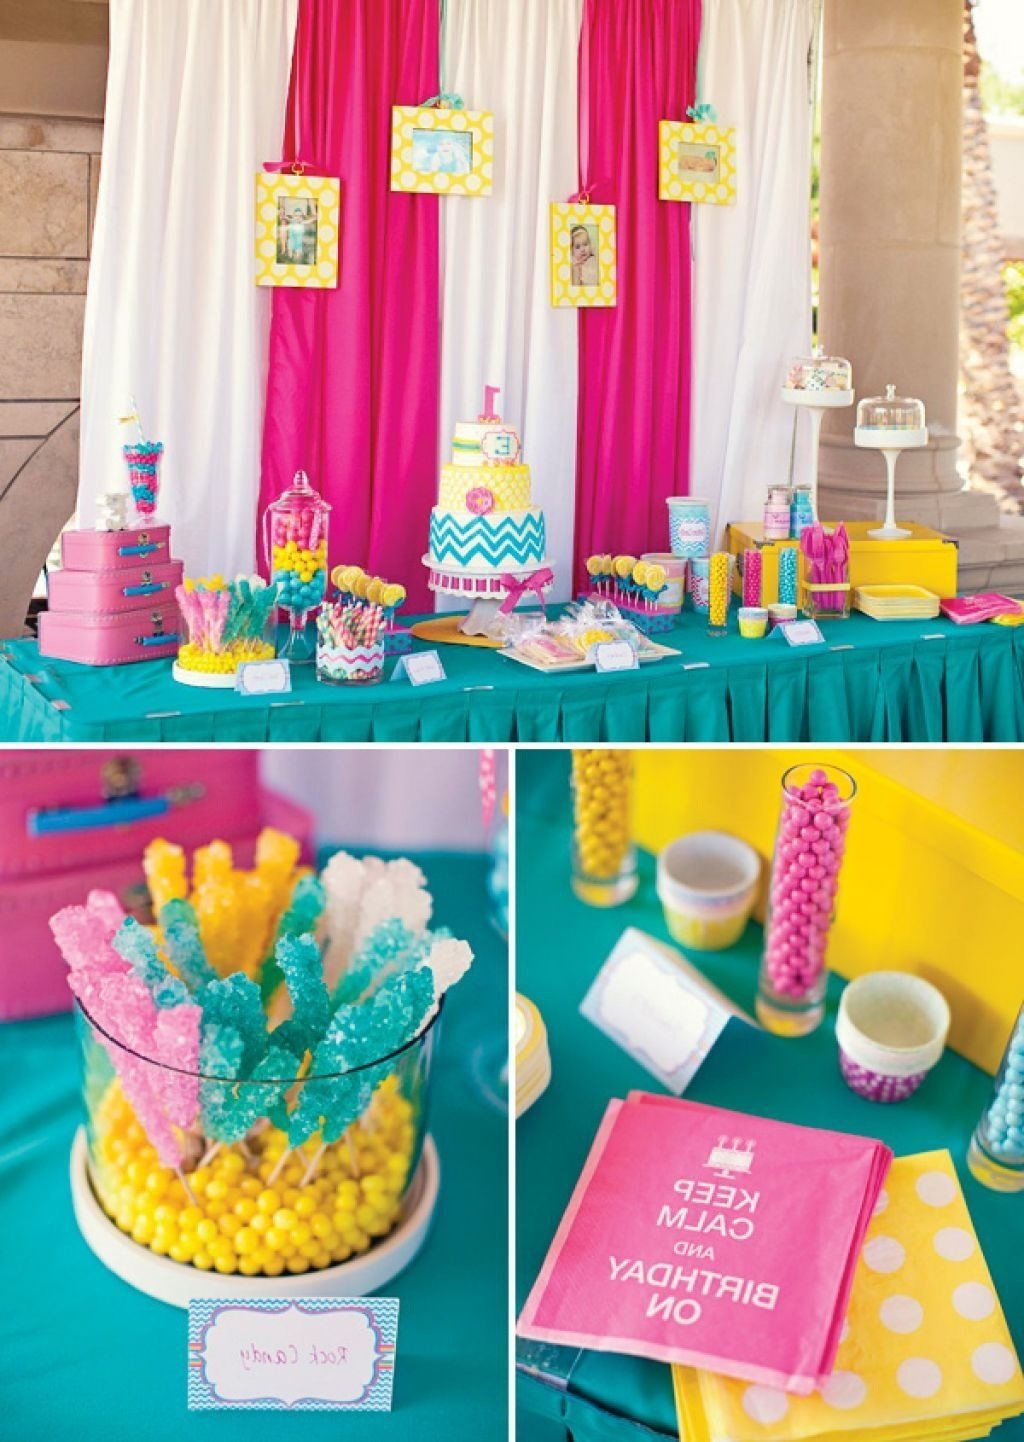 10 Great 8 Year Old Birthday Ideas outdoor party decorations google search madeline pinterest